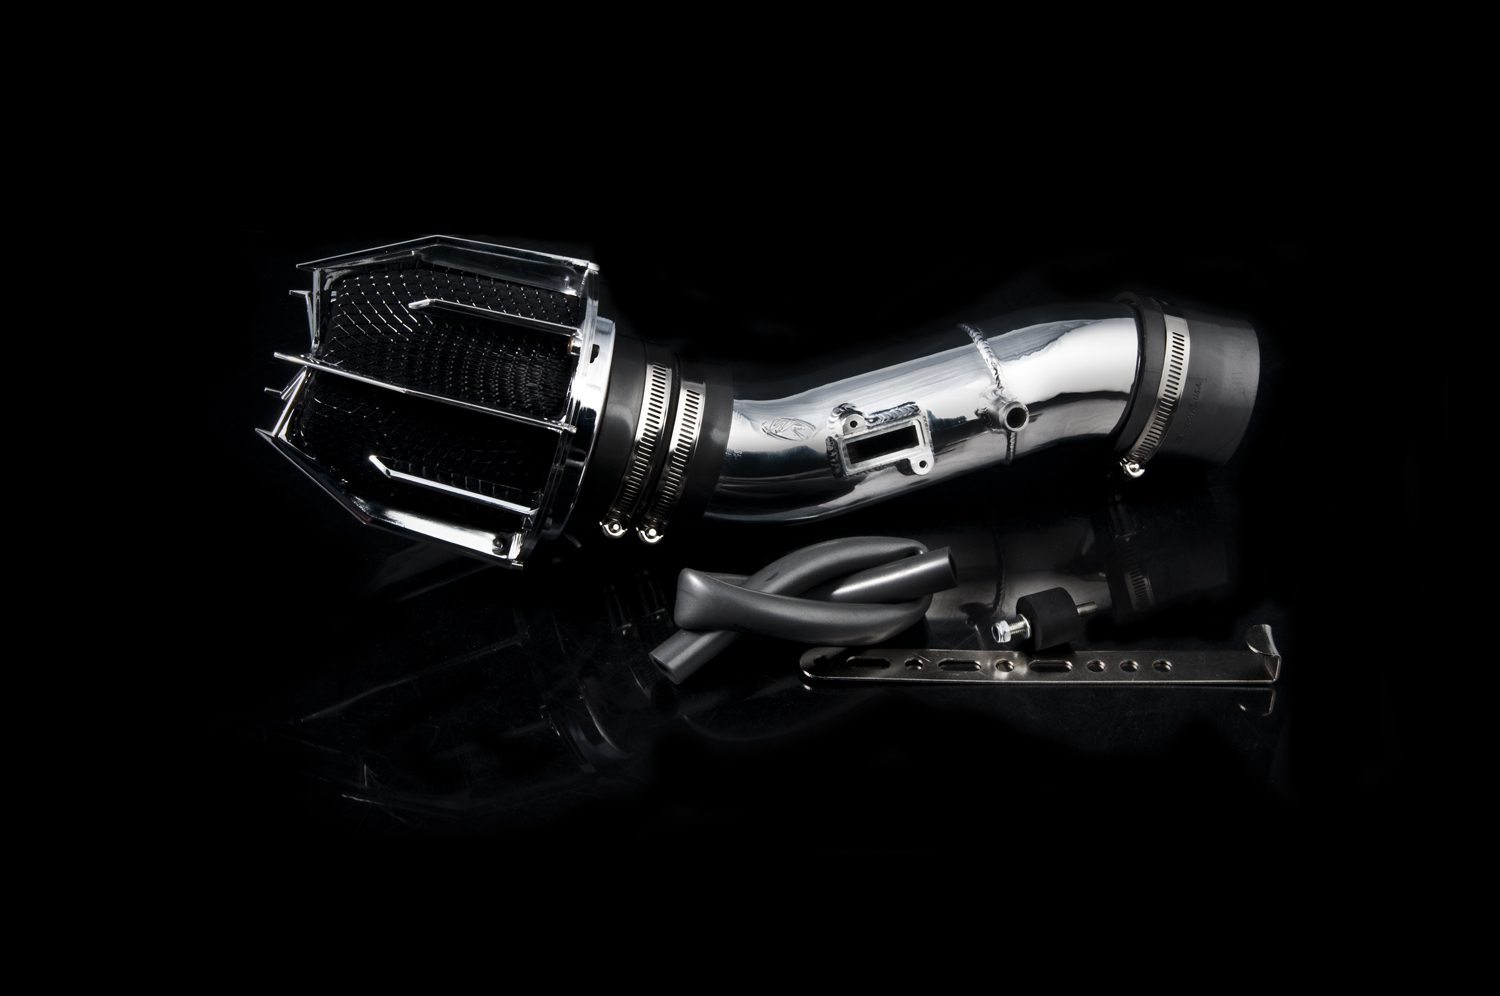 Acura  TL Typs S 3.5l V6 2007-2008 Weapon-R Dragon Air Intake